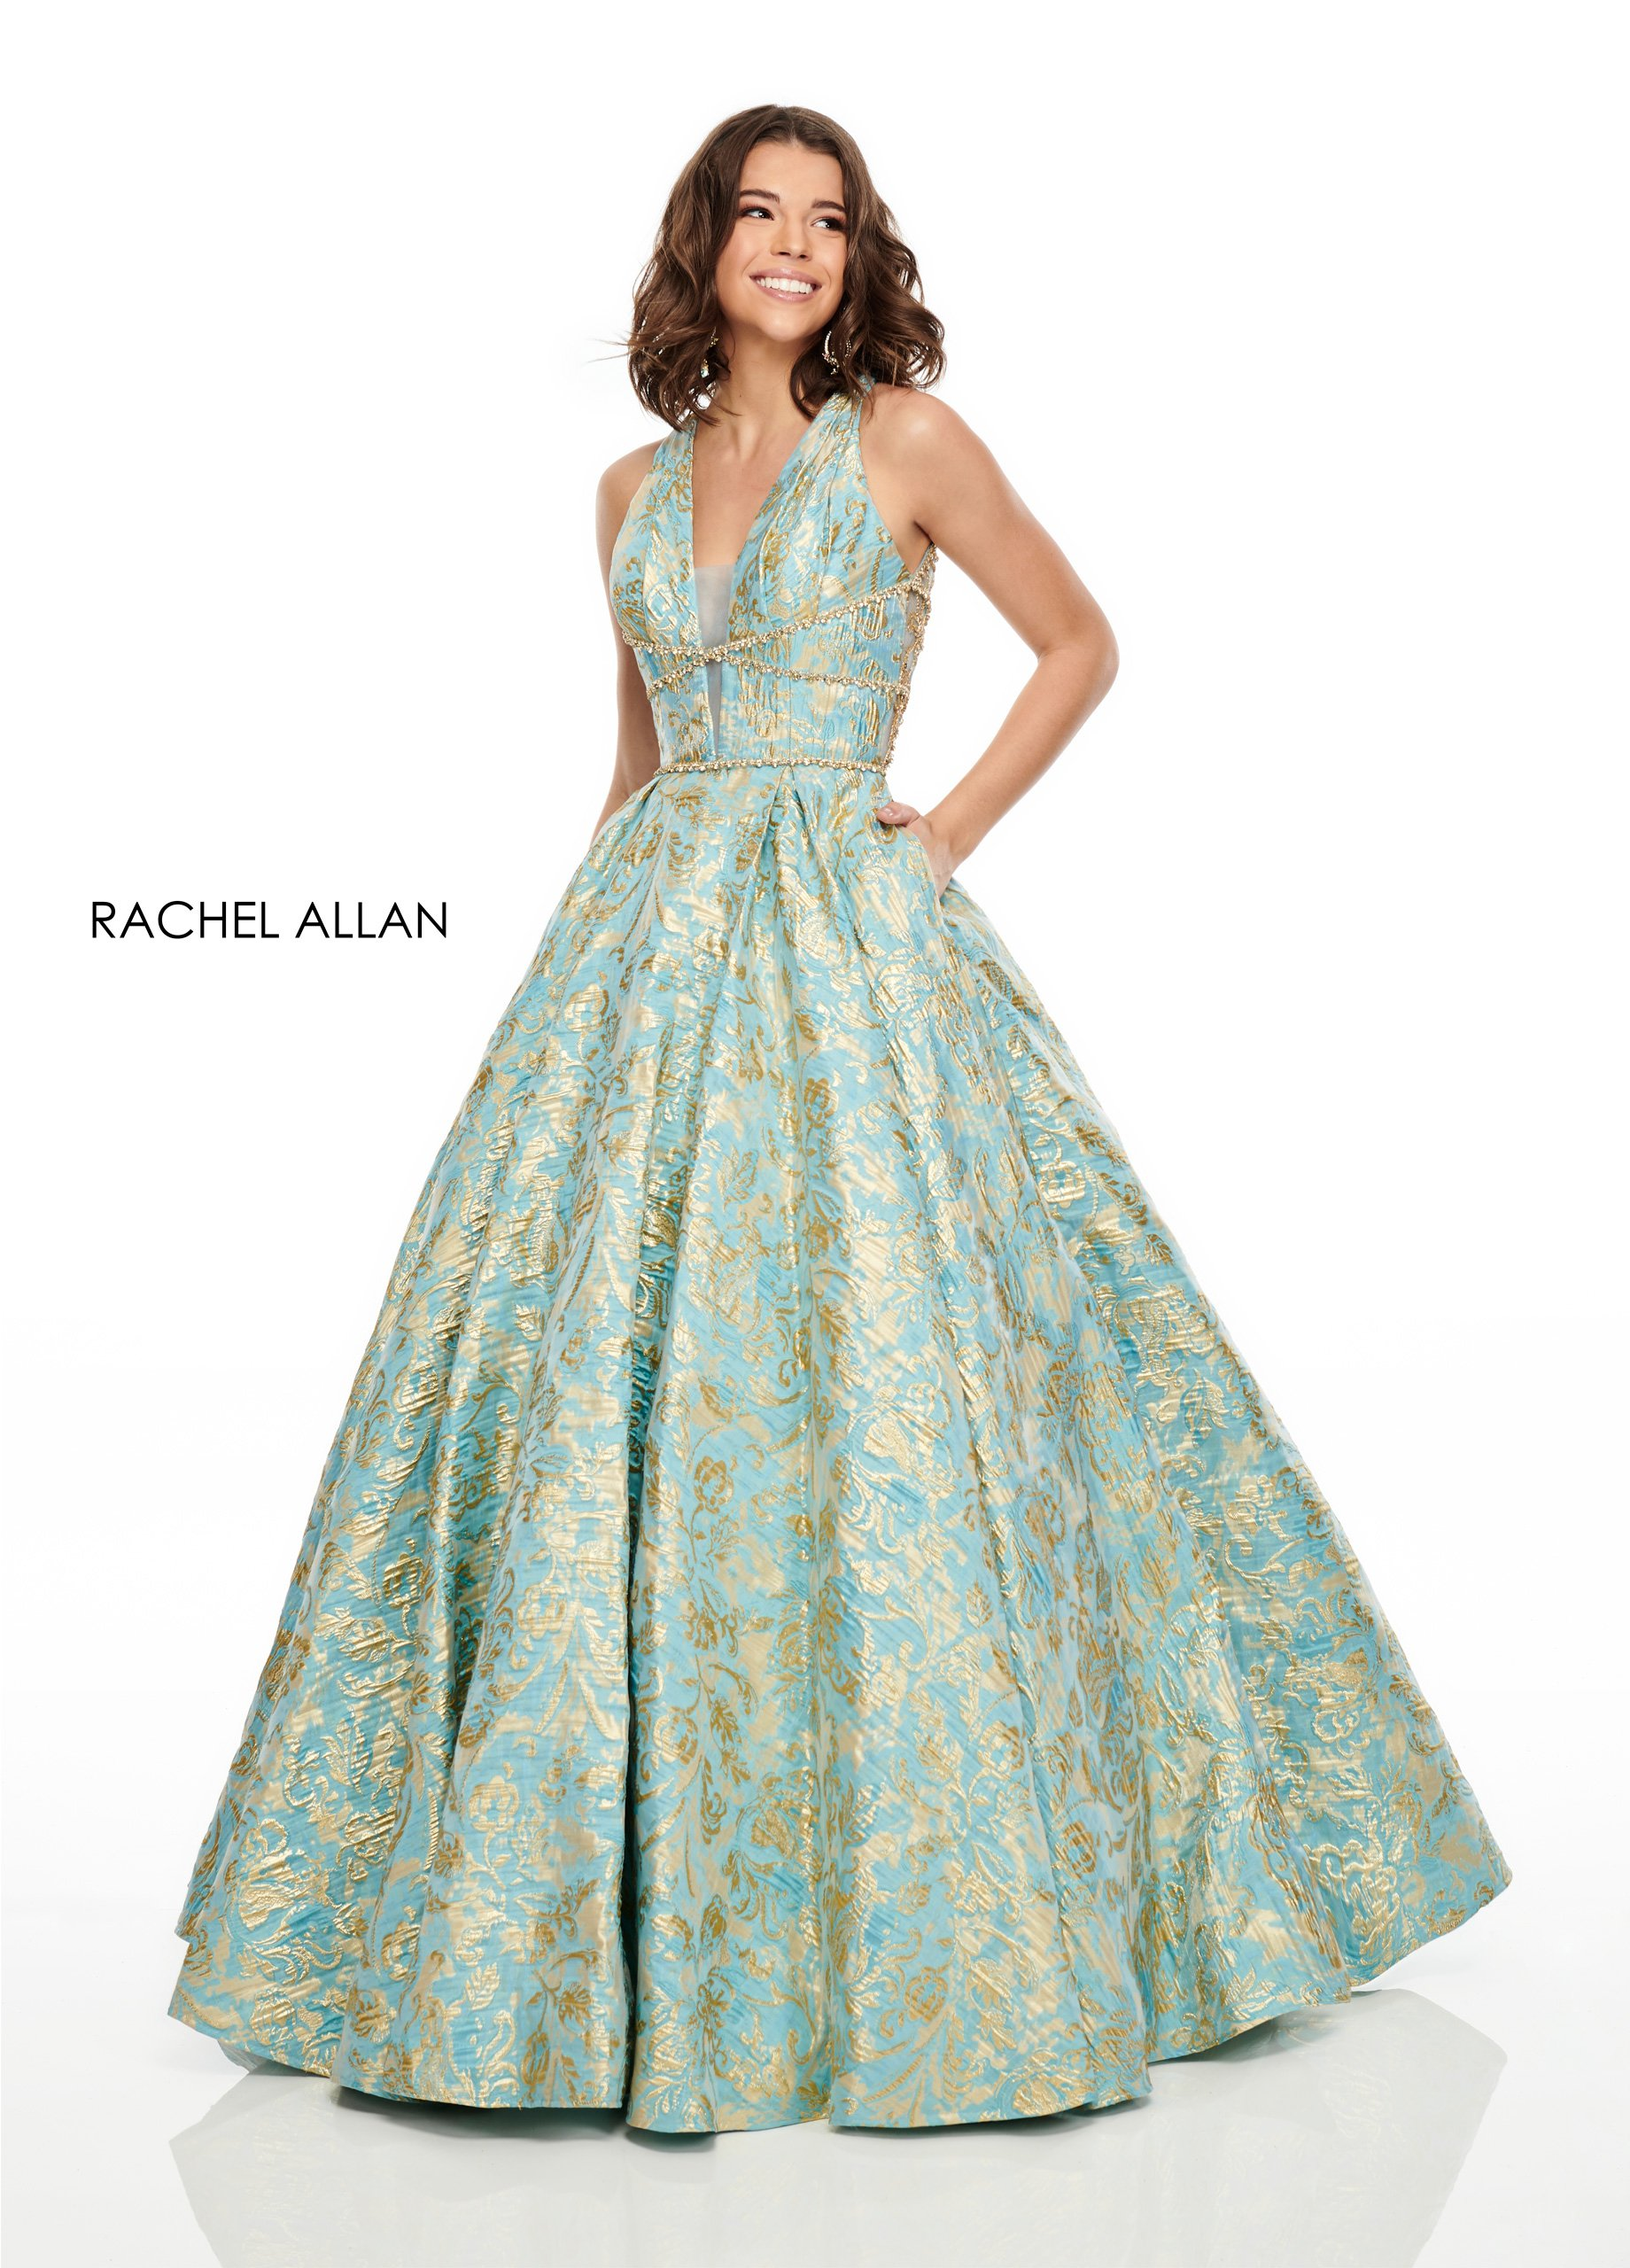 V-Neck Ball Gowns Prom Dresses in Aqua Color